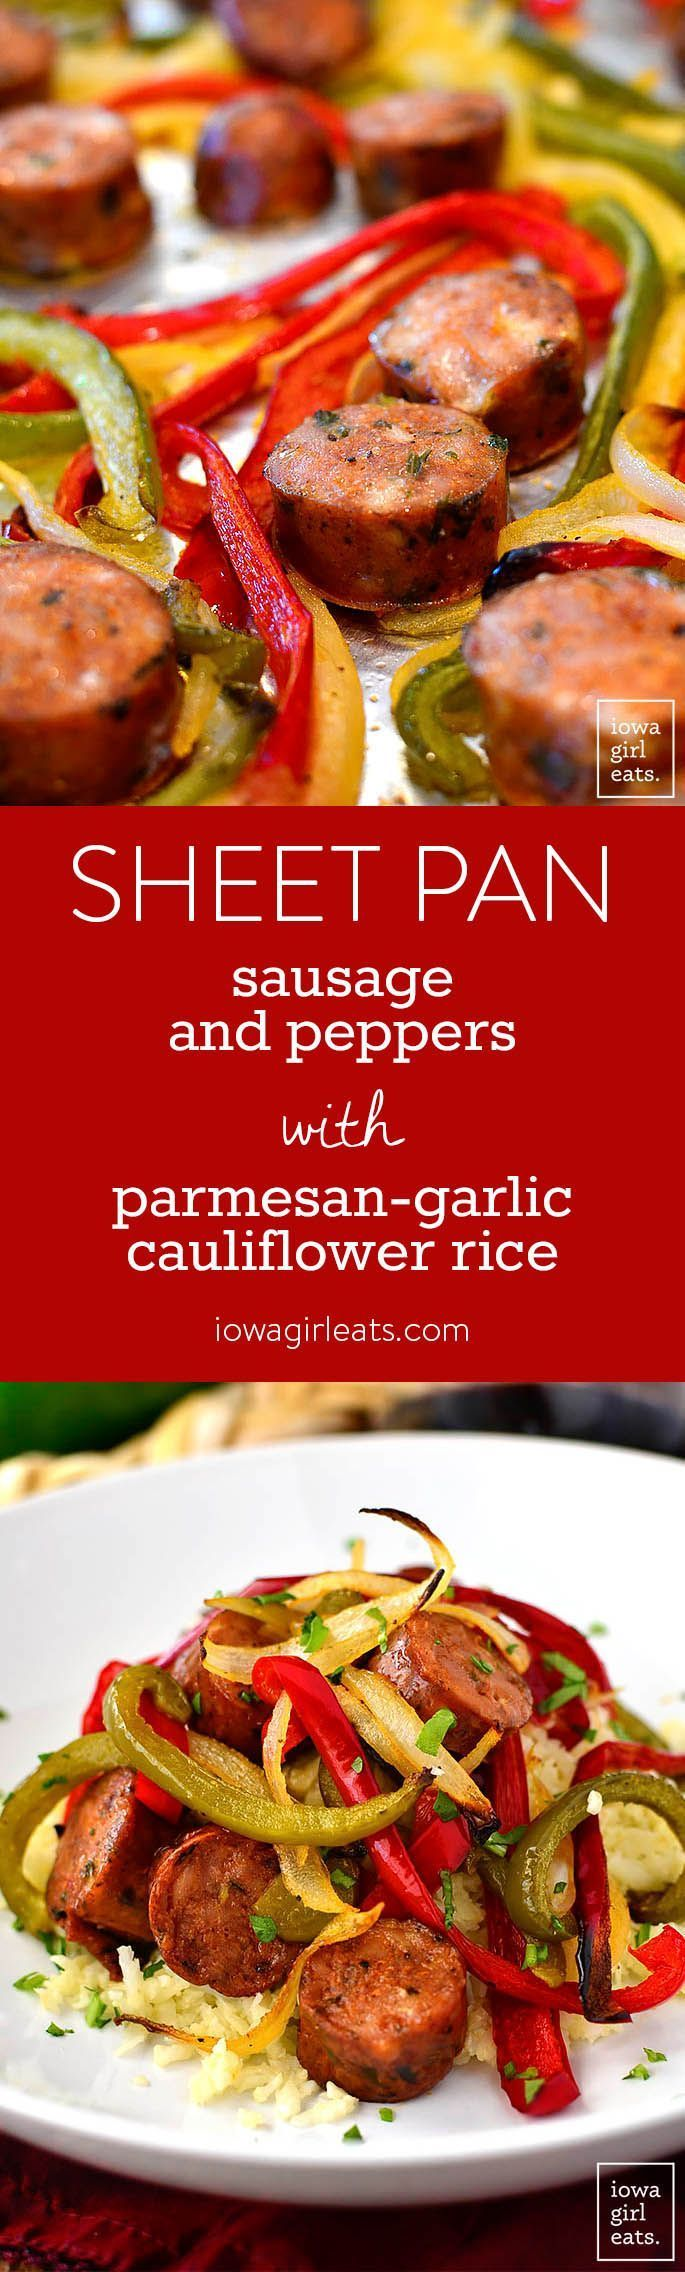 Sheet Pan Sausage and Peppers with Parmesan-Garlic Cauliflower Rice is simple and packed with healthy vegetables. This gluten-free dinner recipe is absolutely delicious! | http://iowagirleats.com